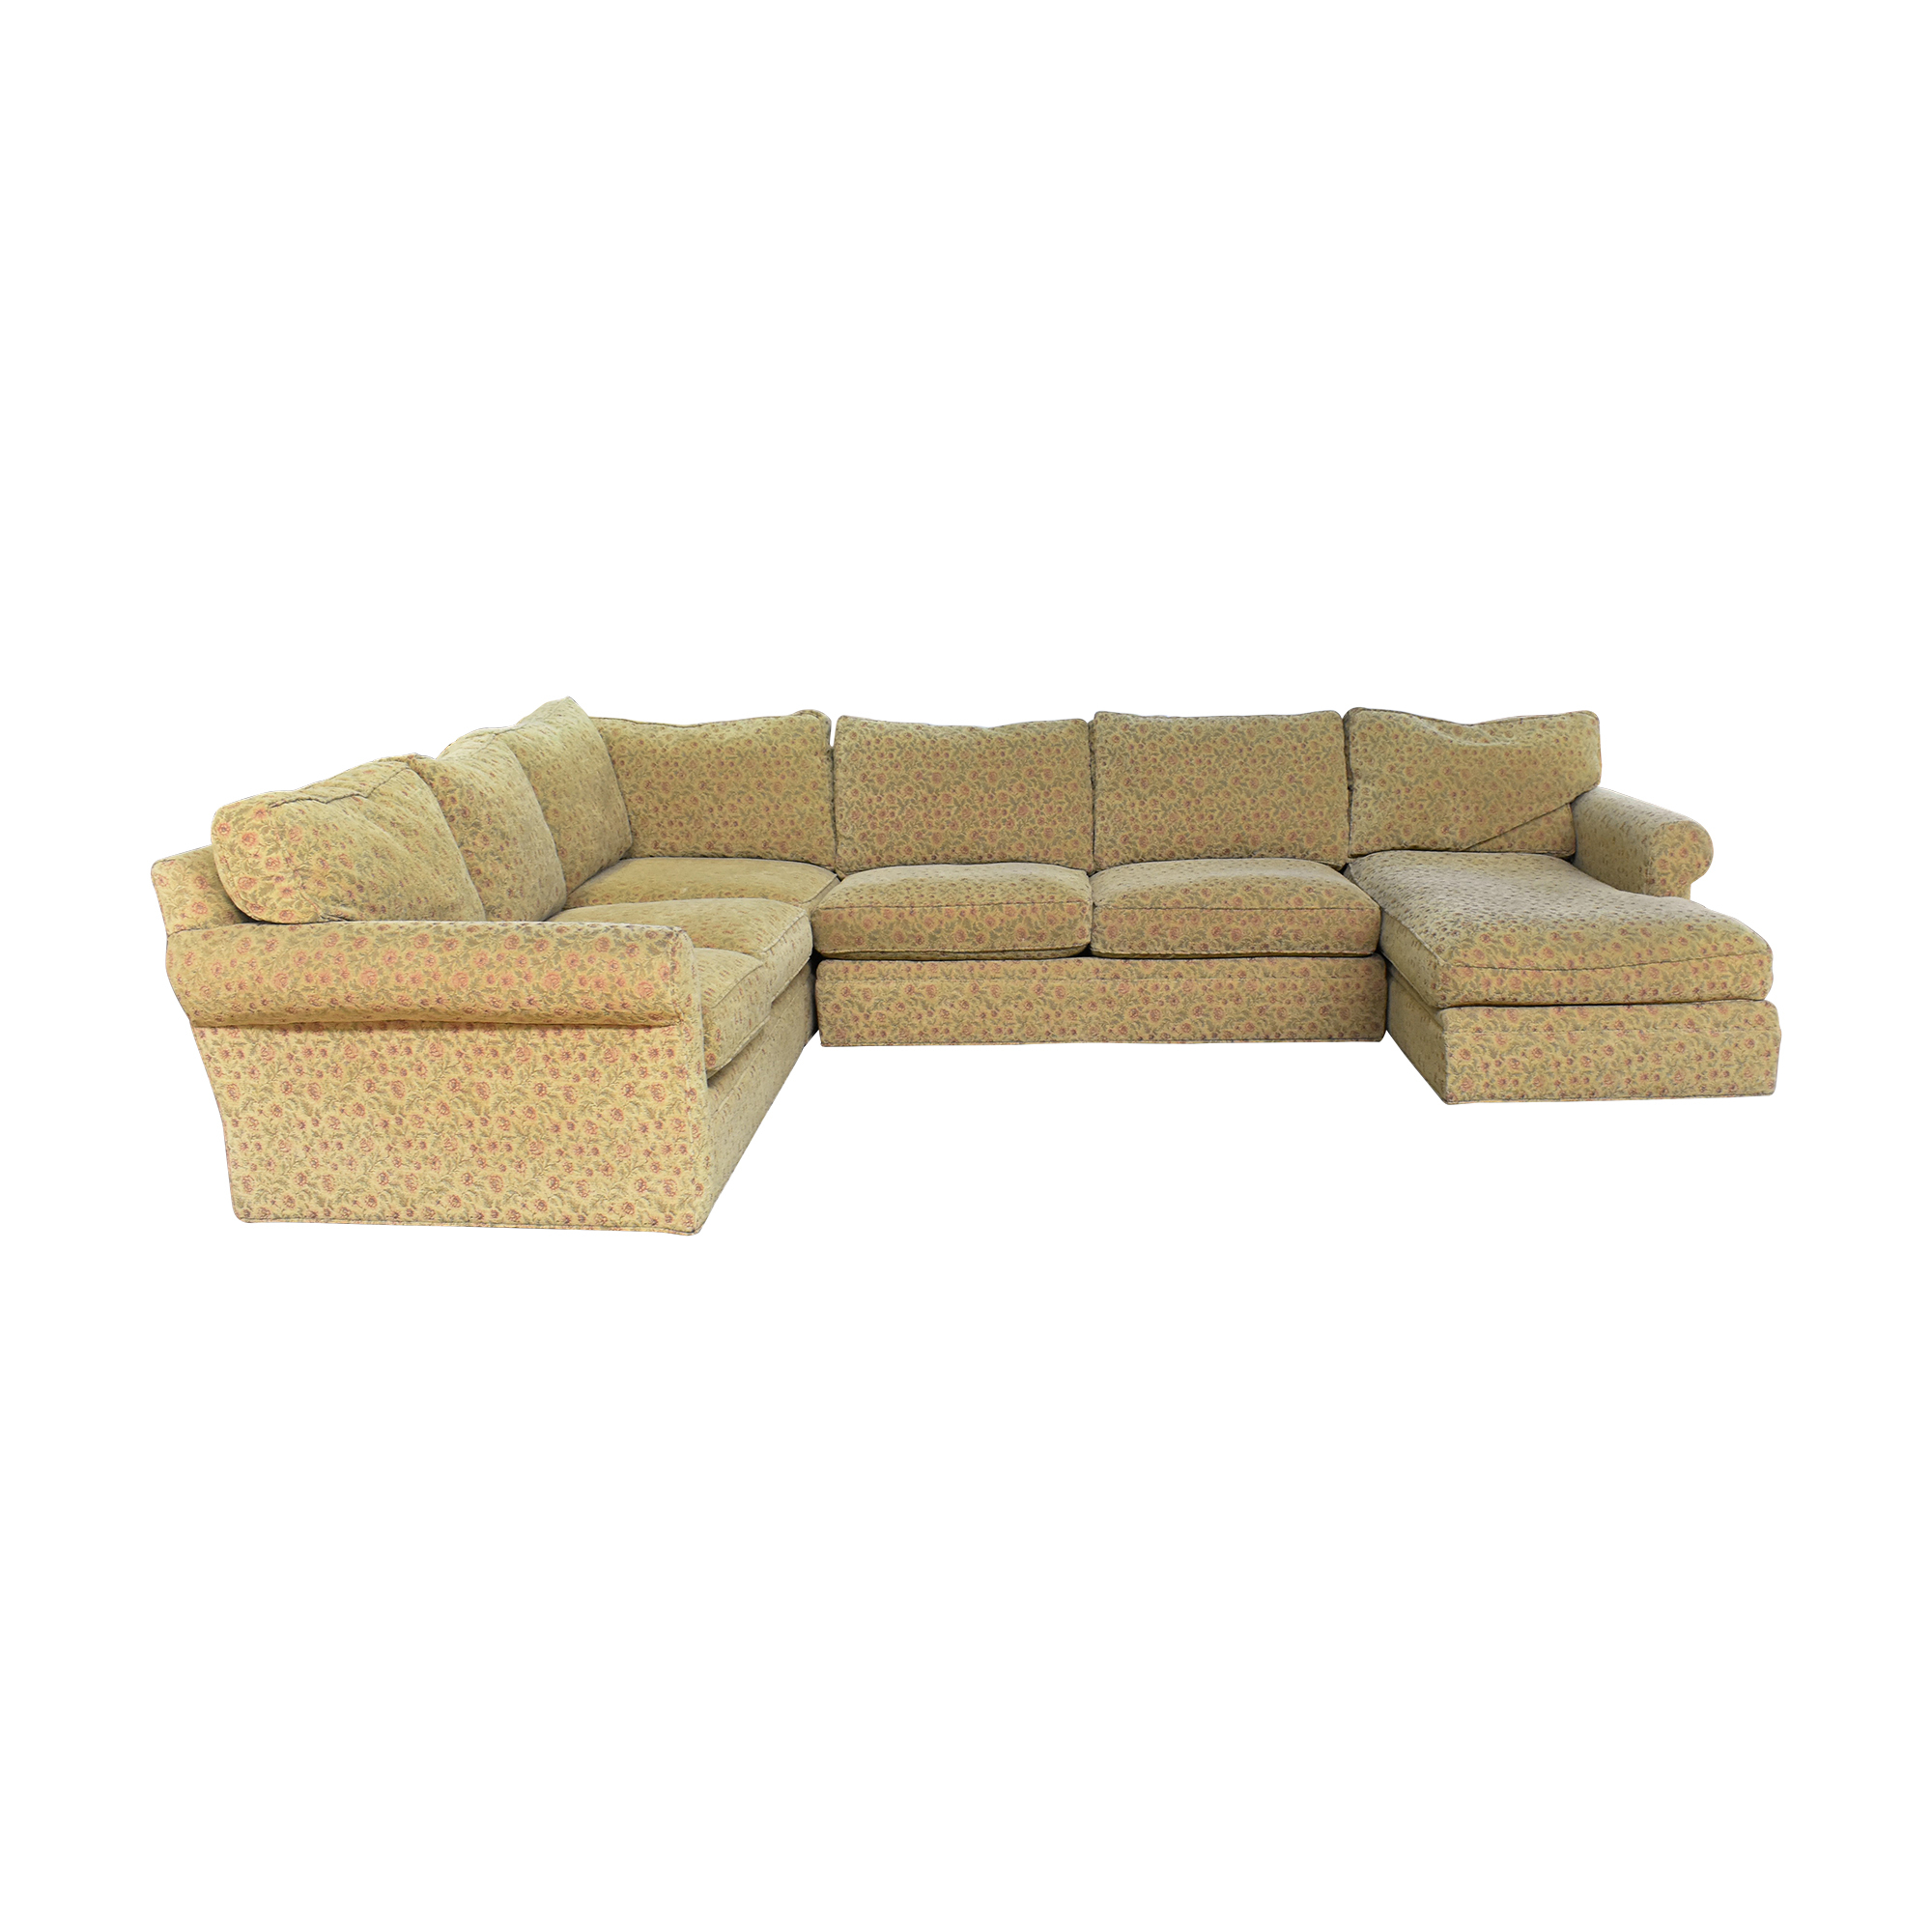 shop Crate & Barrel Huntley Chaise U Sectional Sofa Crate & Barrel Sofas